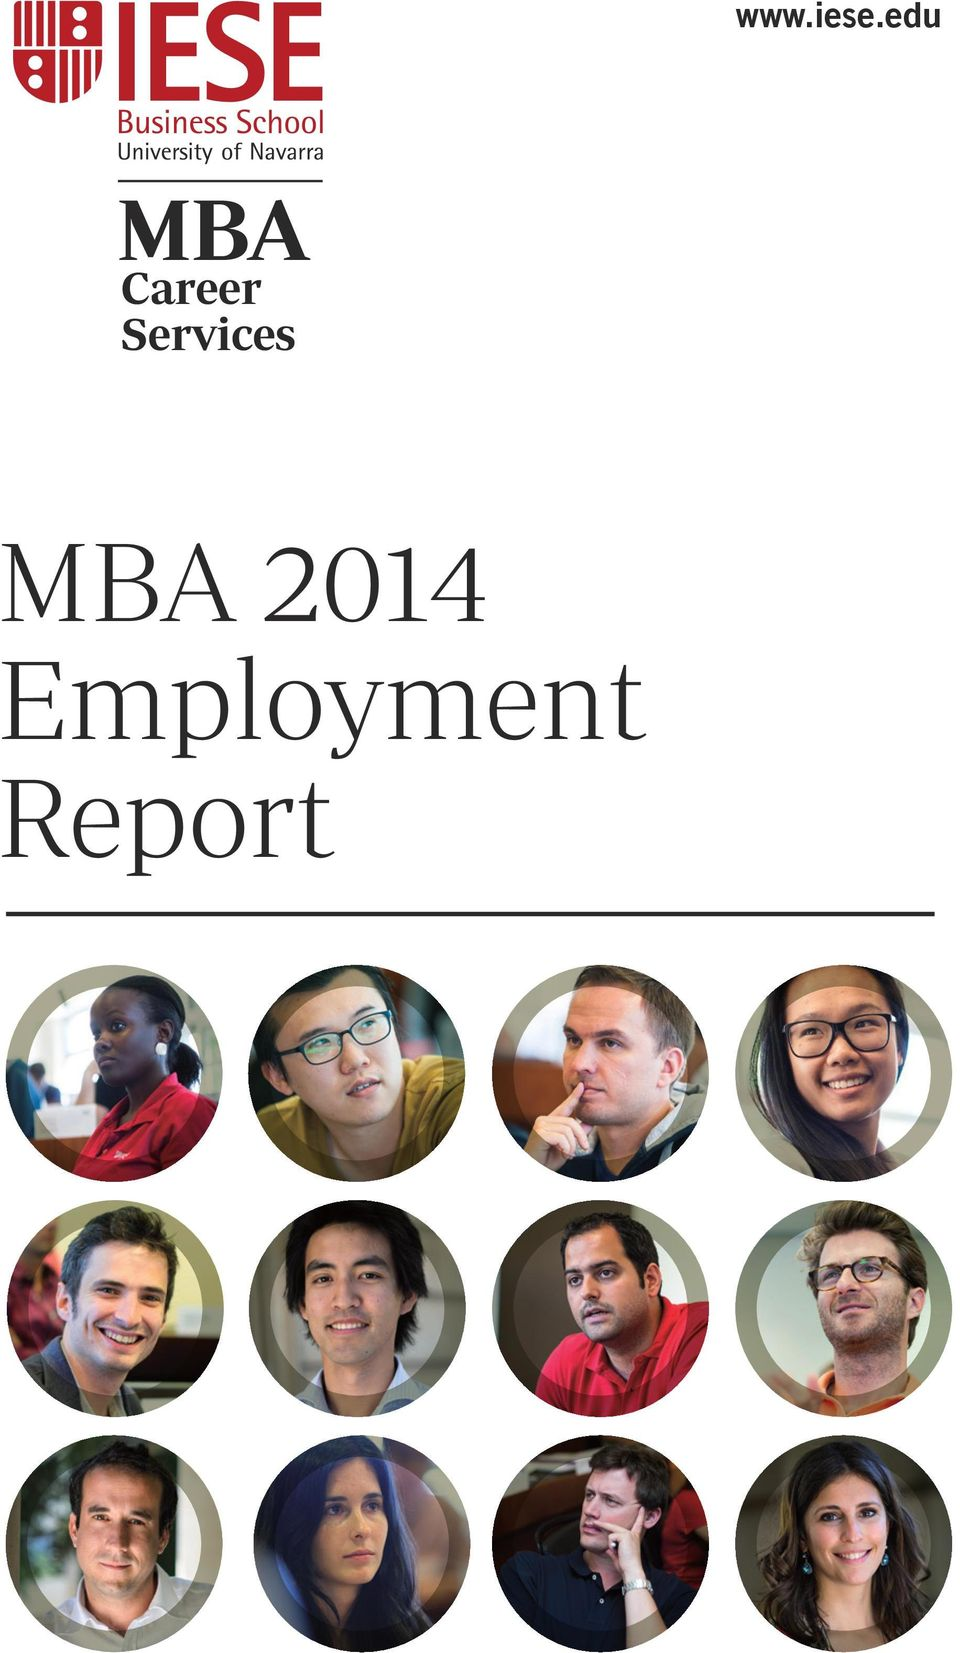 Services MBA